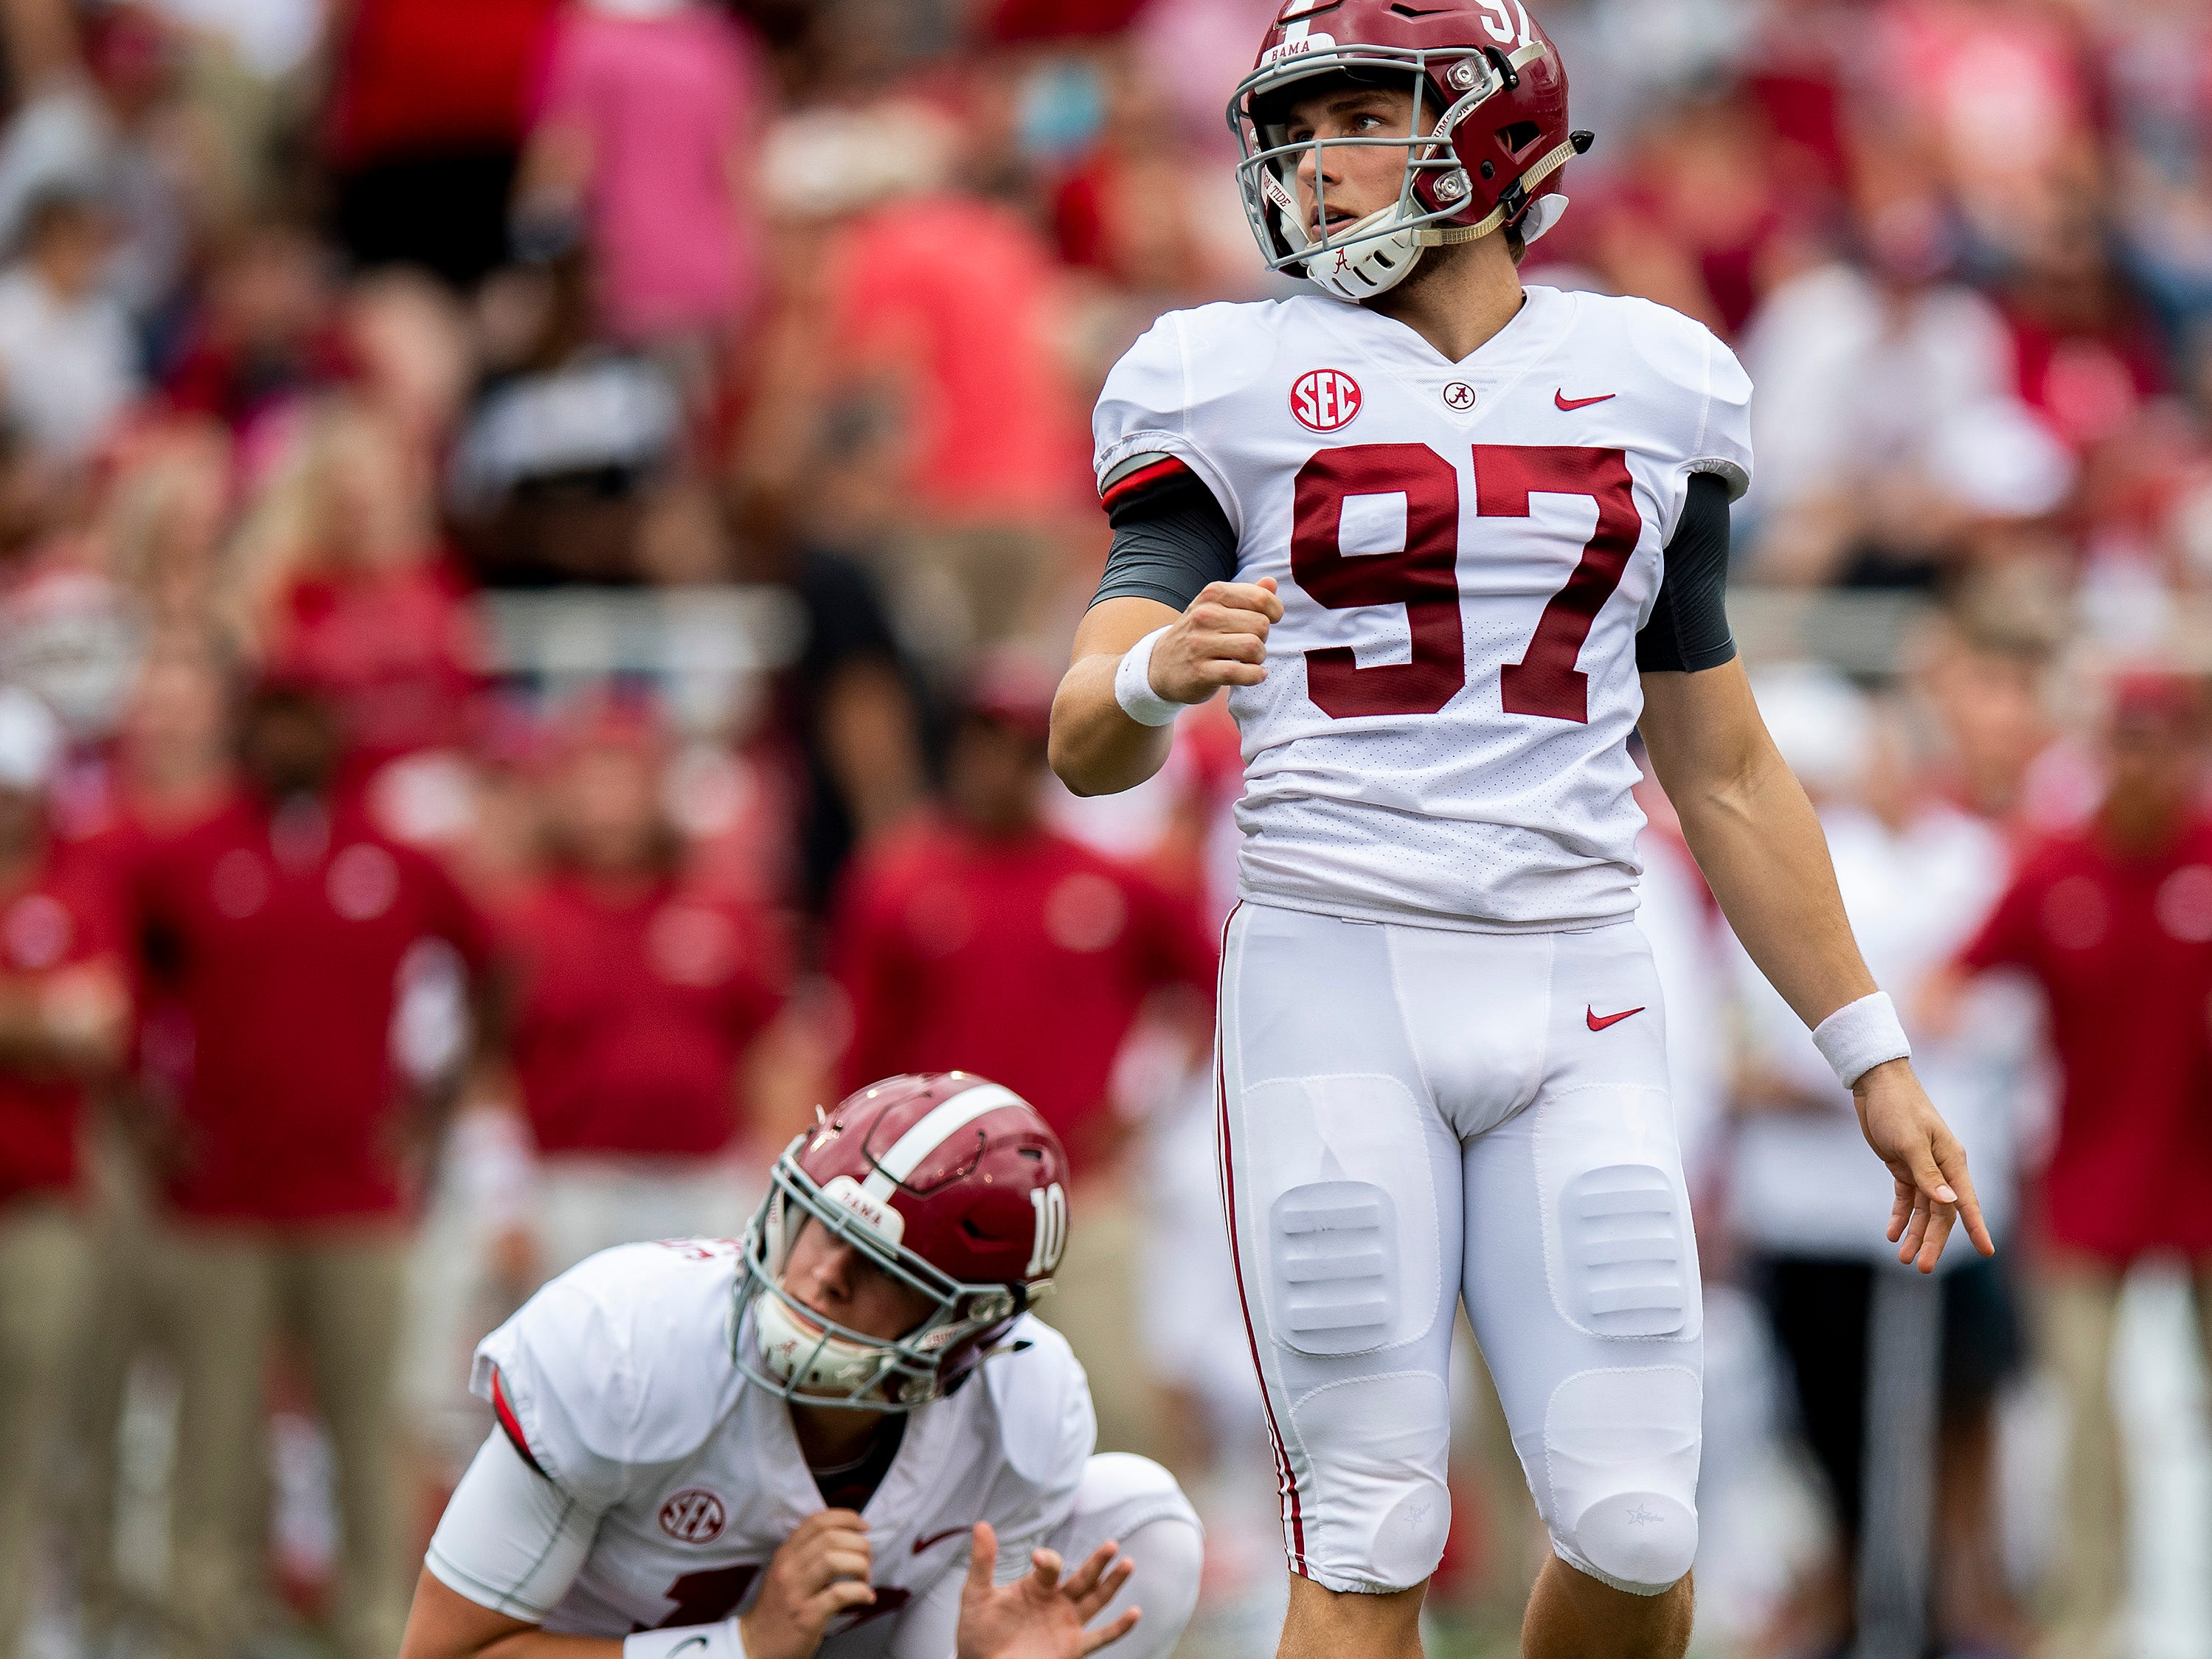 Alabama kicker Joseph Bulovas (97) misses an extra point against Arkansas during first half action in Fayetteville, Ark., on Saturday October 6, 2018.